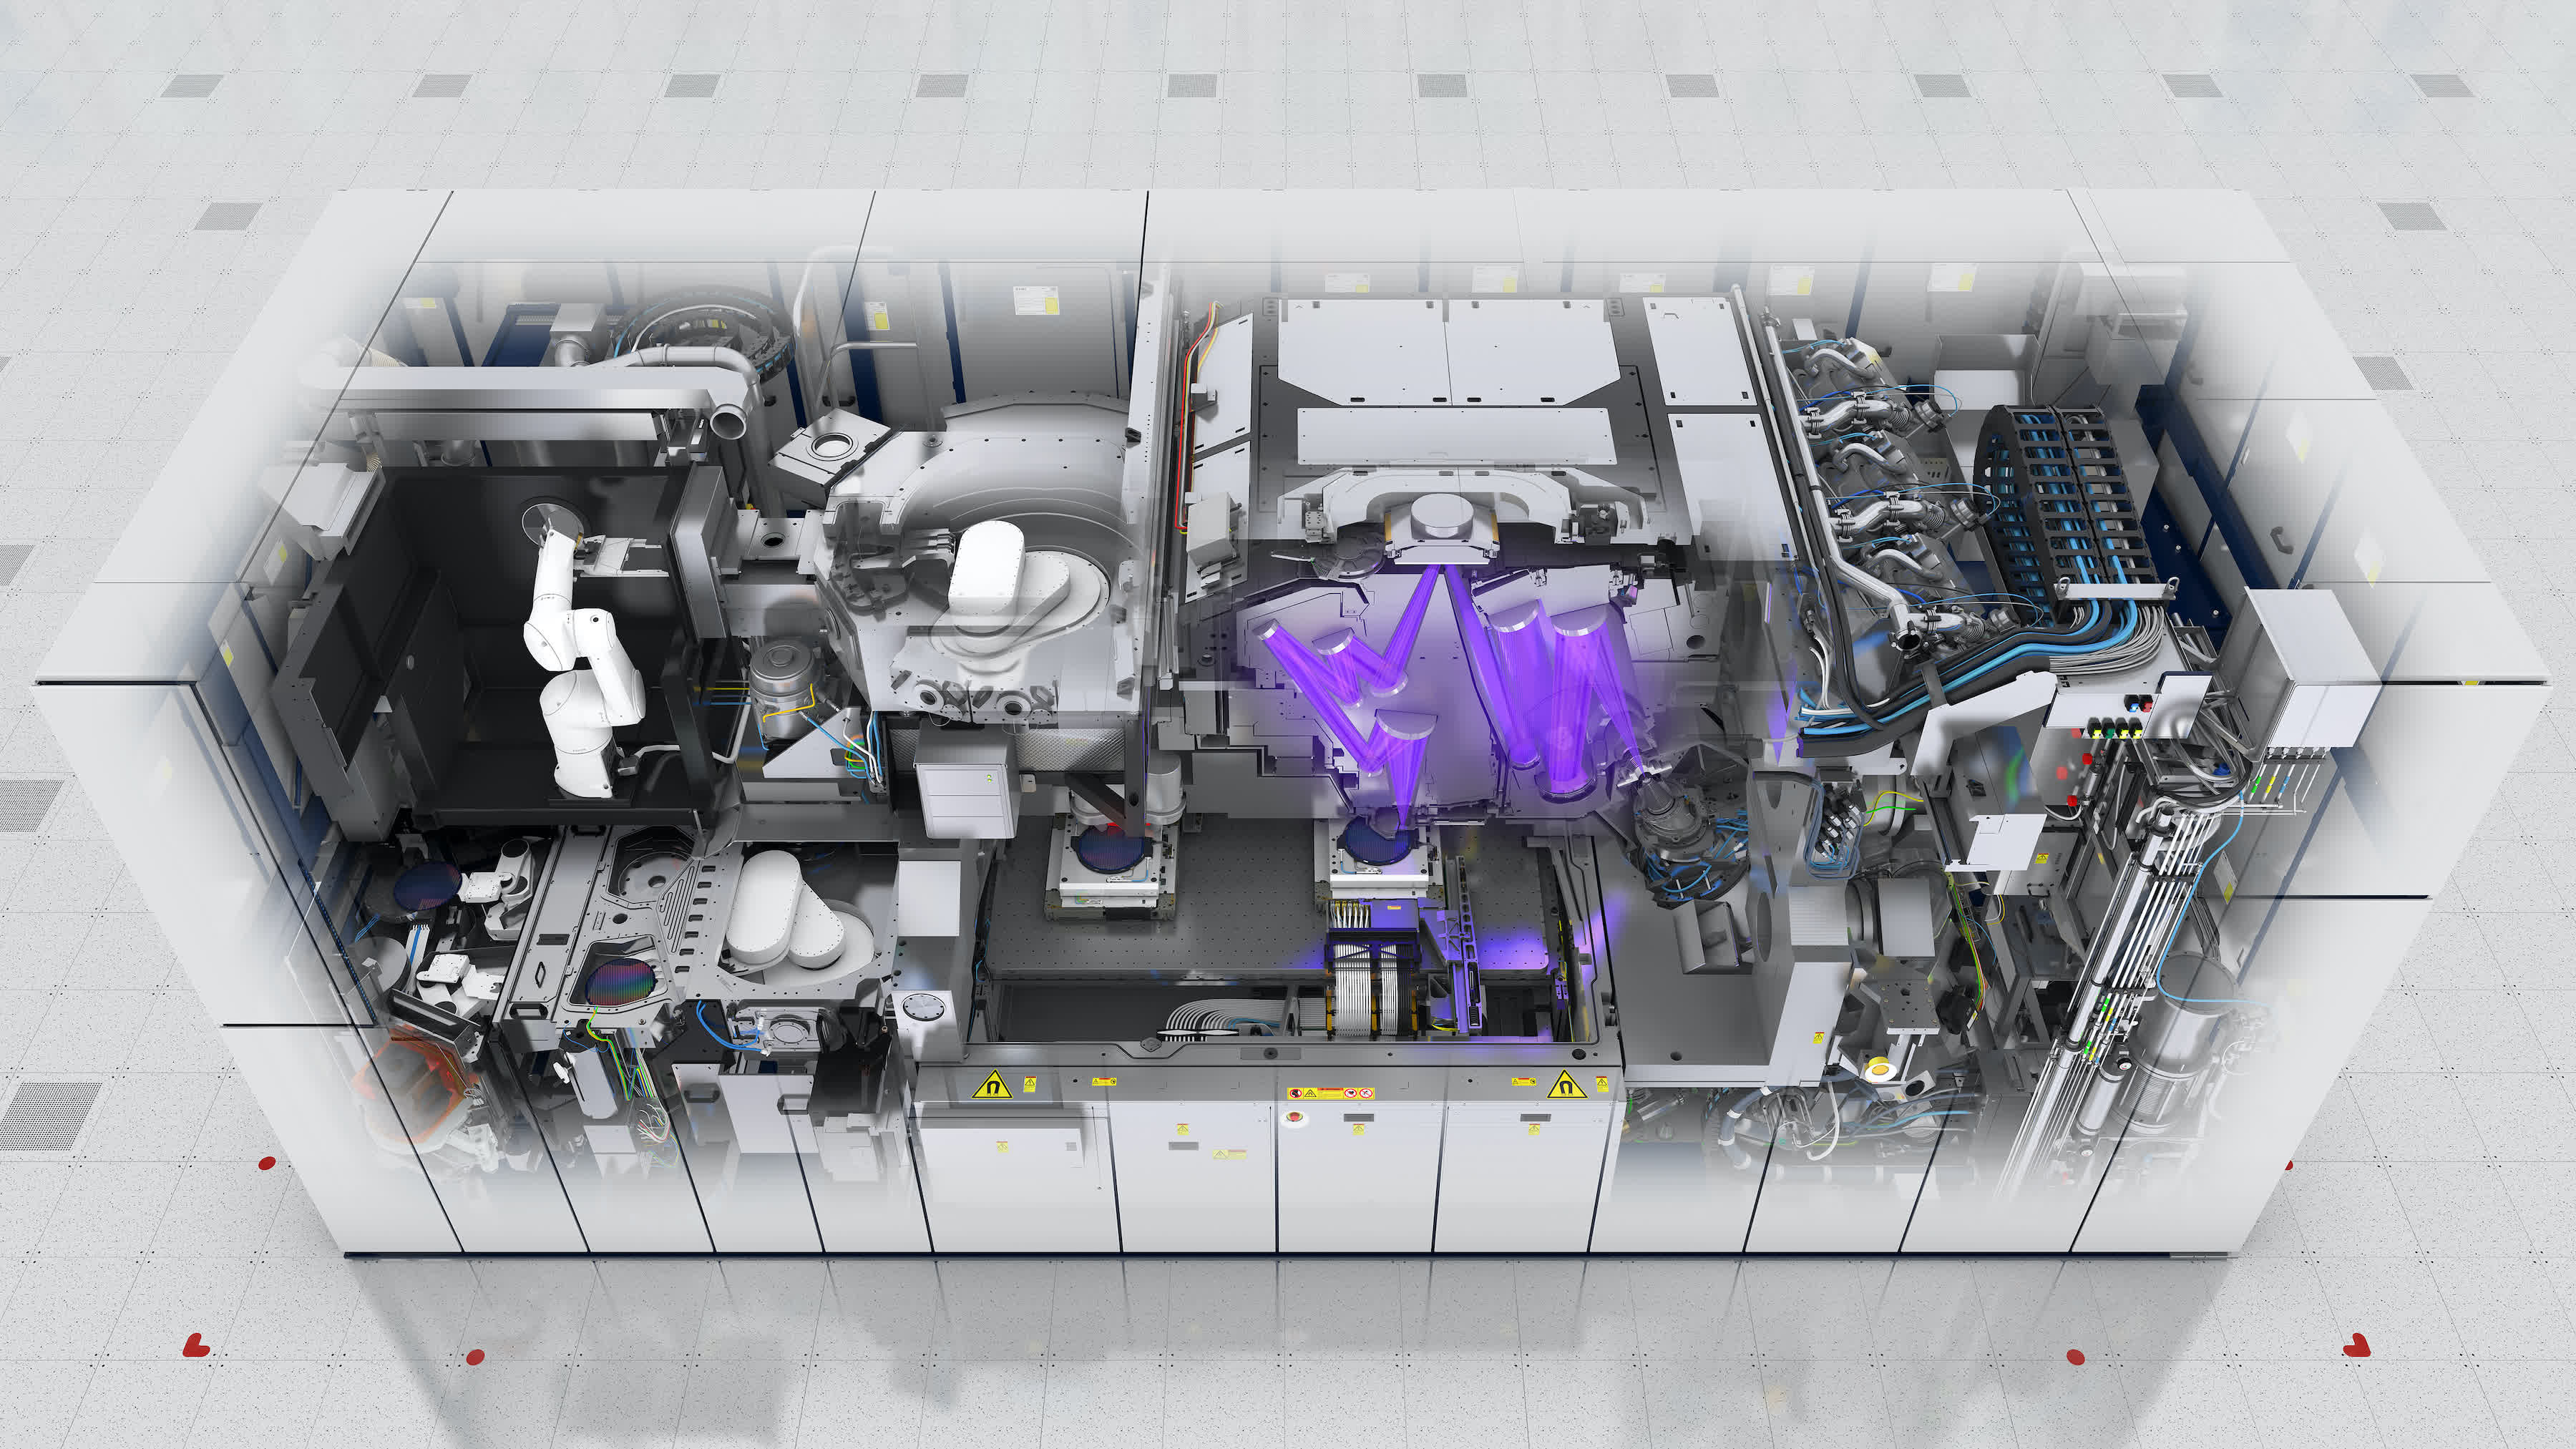 ASML's next-gen EUV machine will give Moore's Law a new lease of life